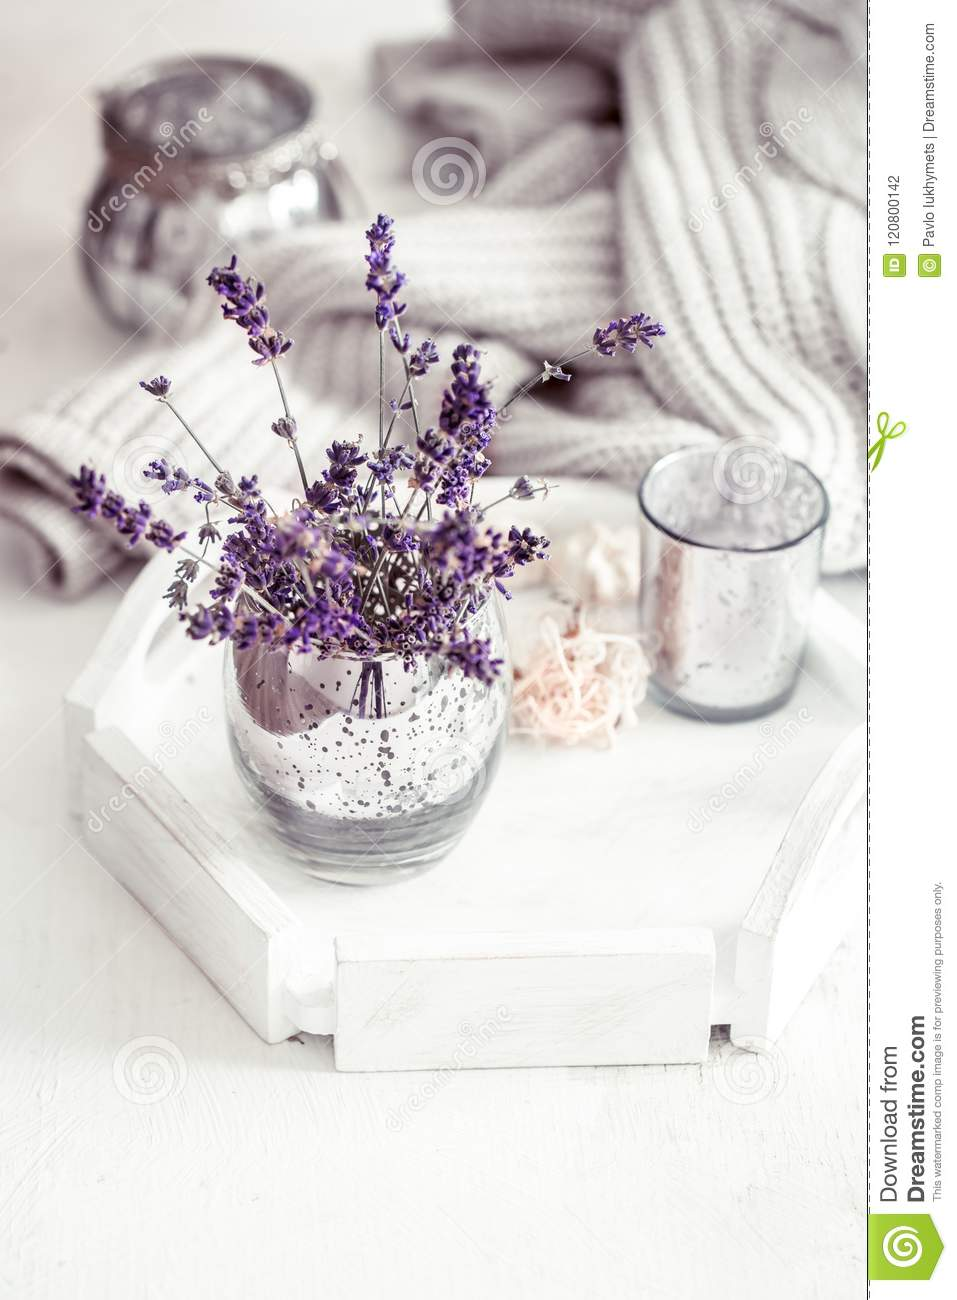 Still life with lavender in a glass